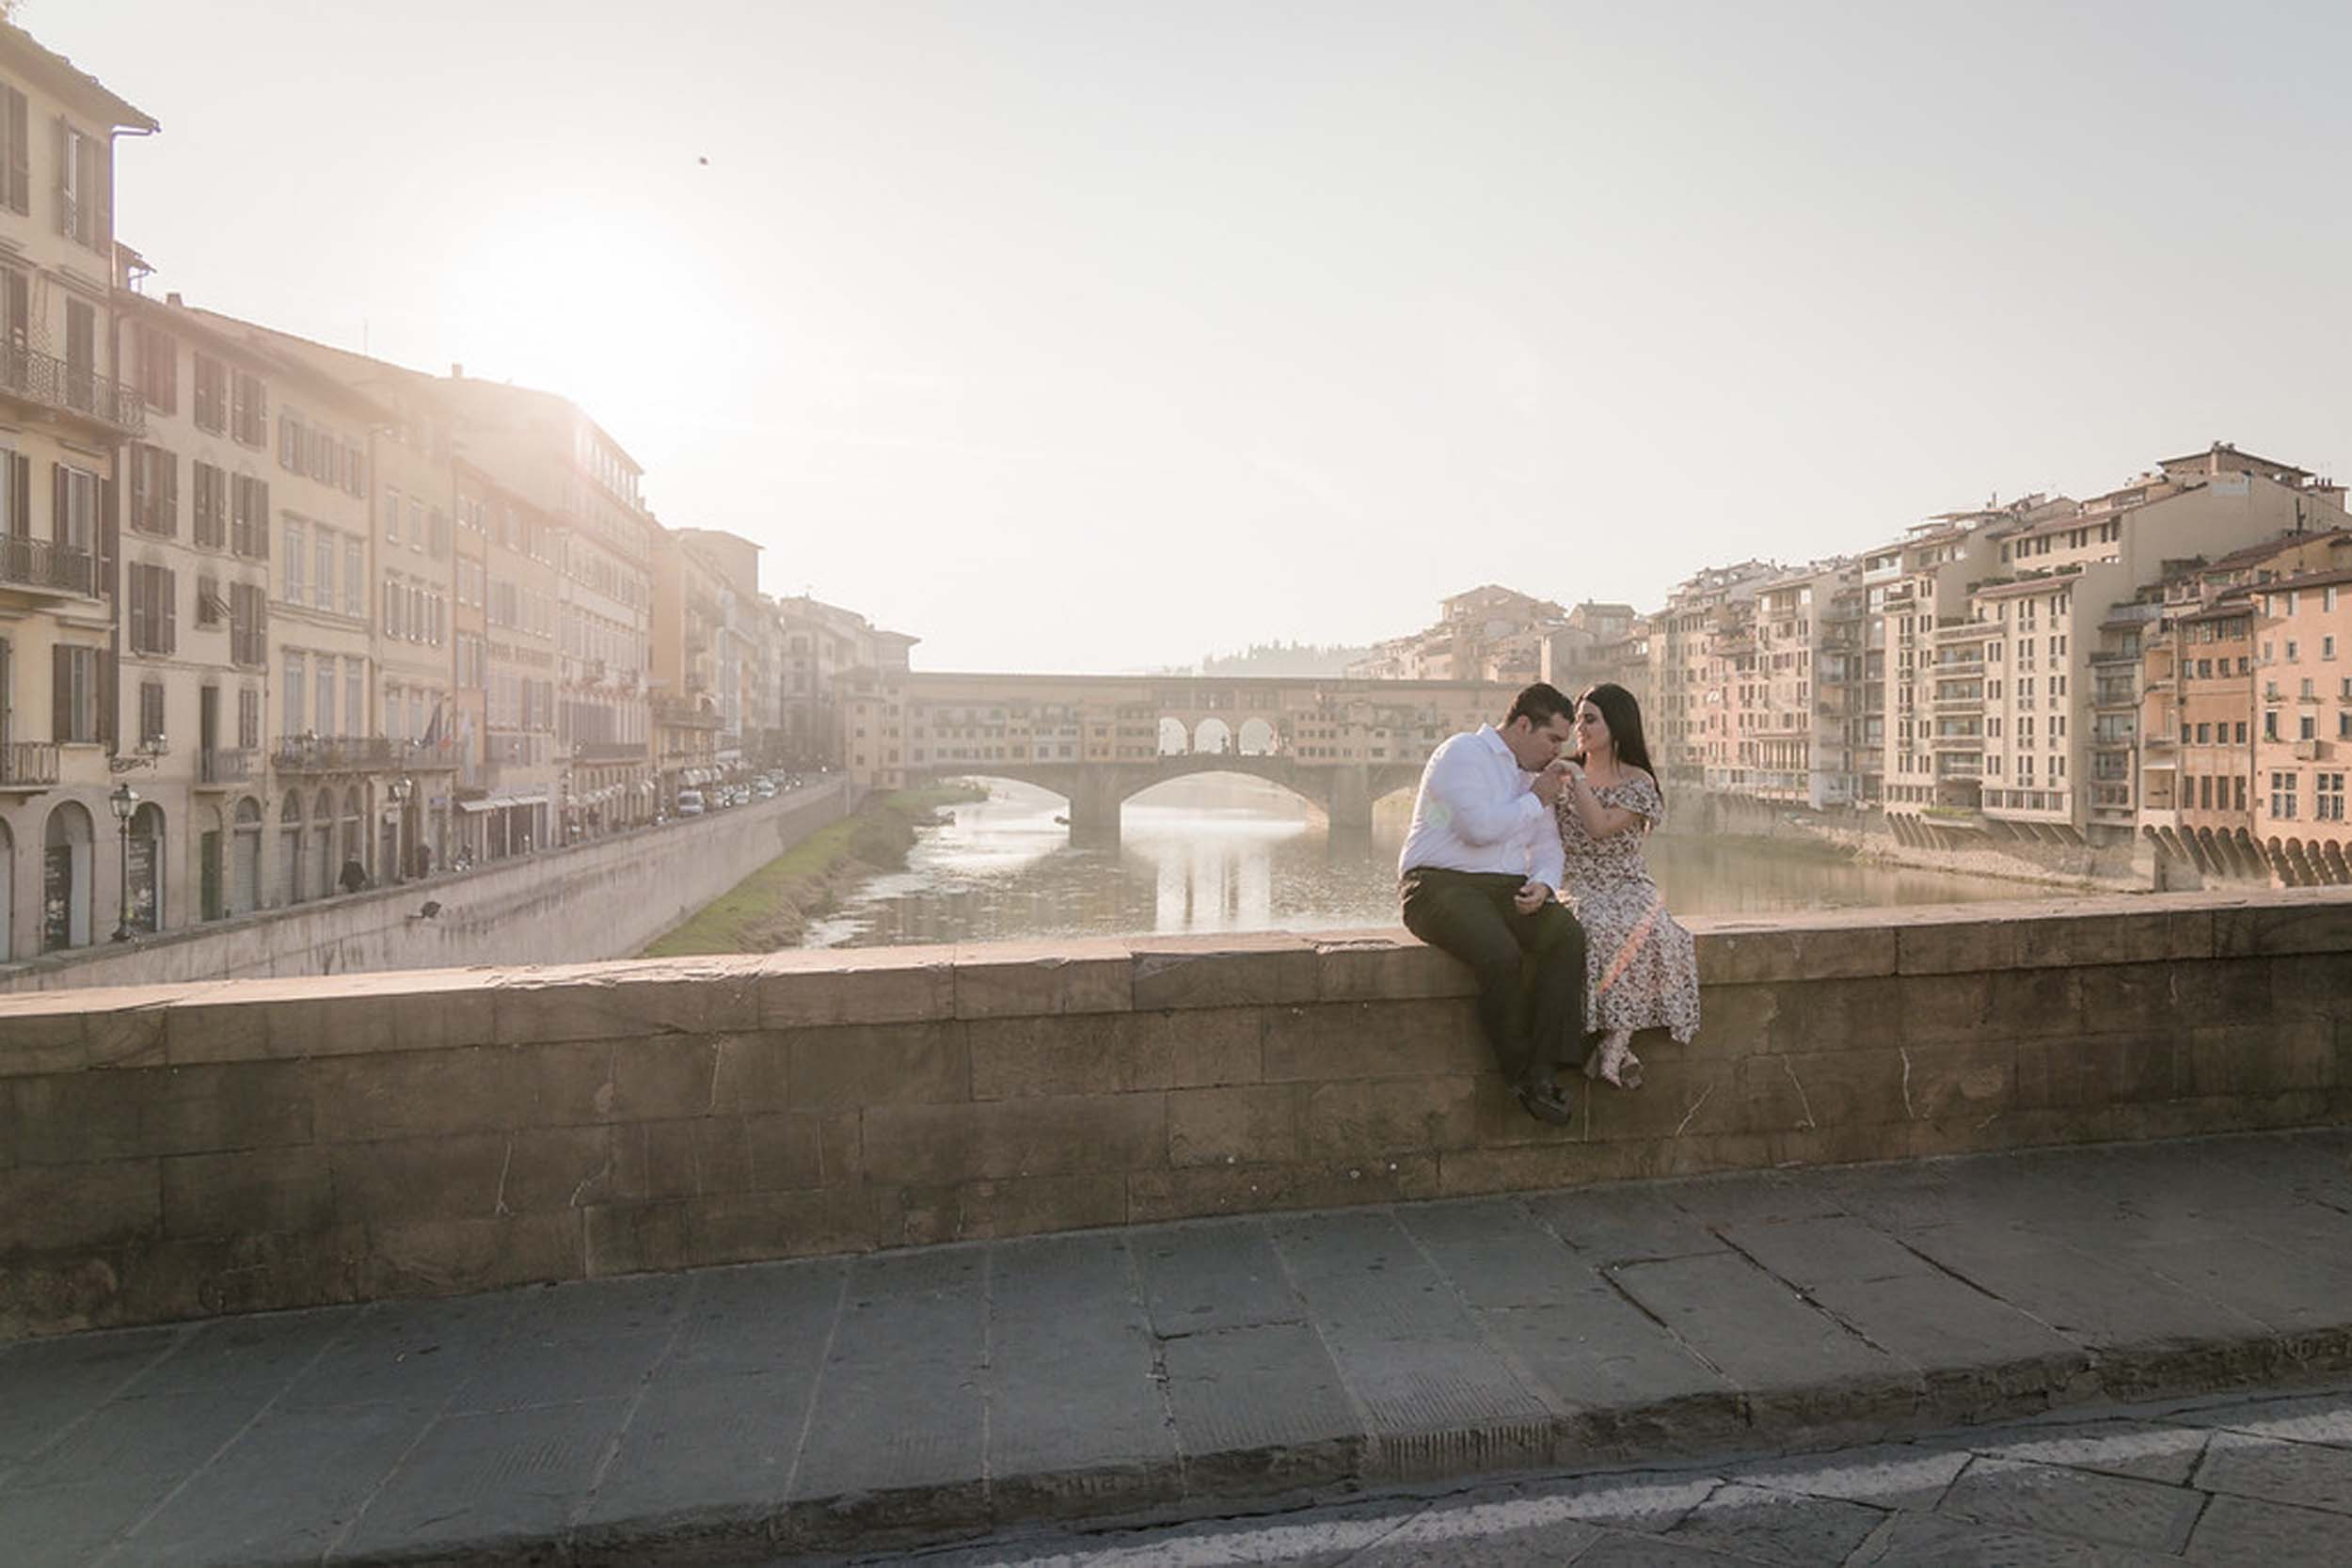 Man kissing partner's hand sitting on bridge ledge together at Ponte Vecchio in Florence, Italy